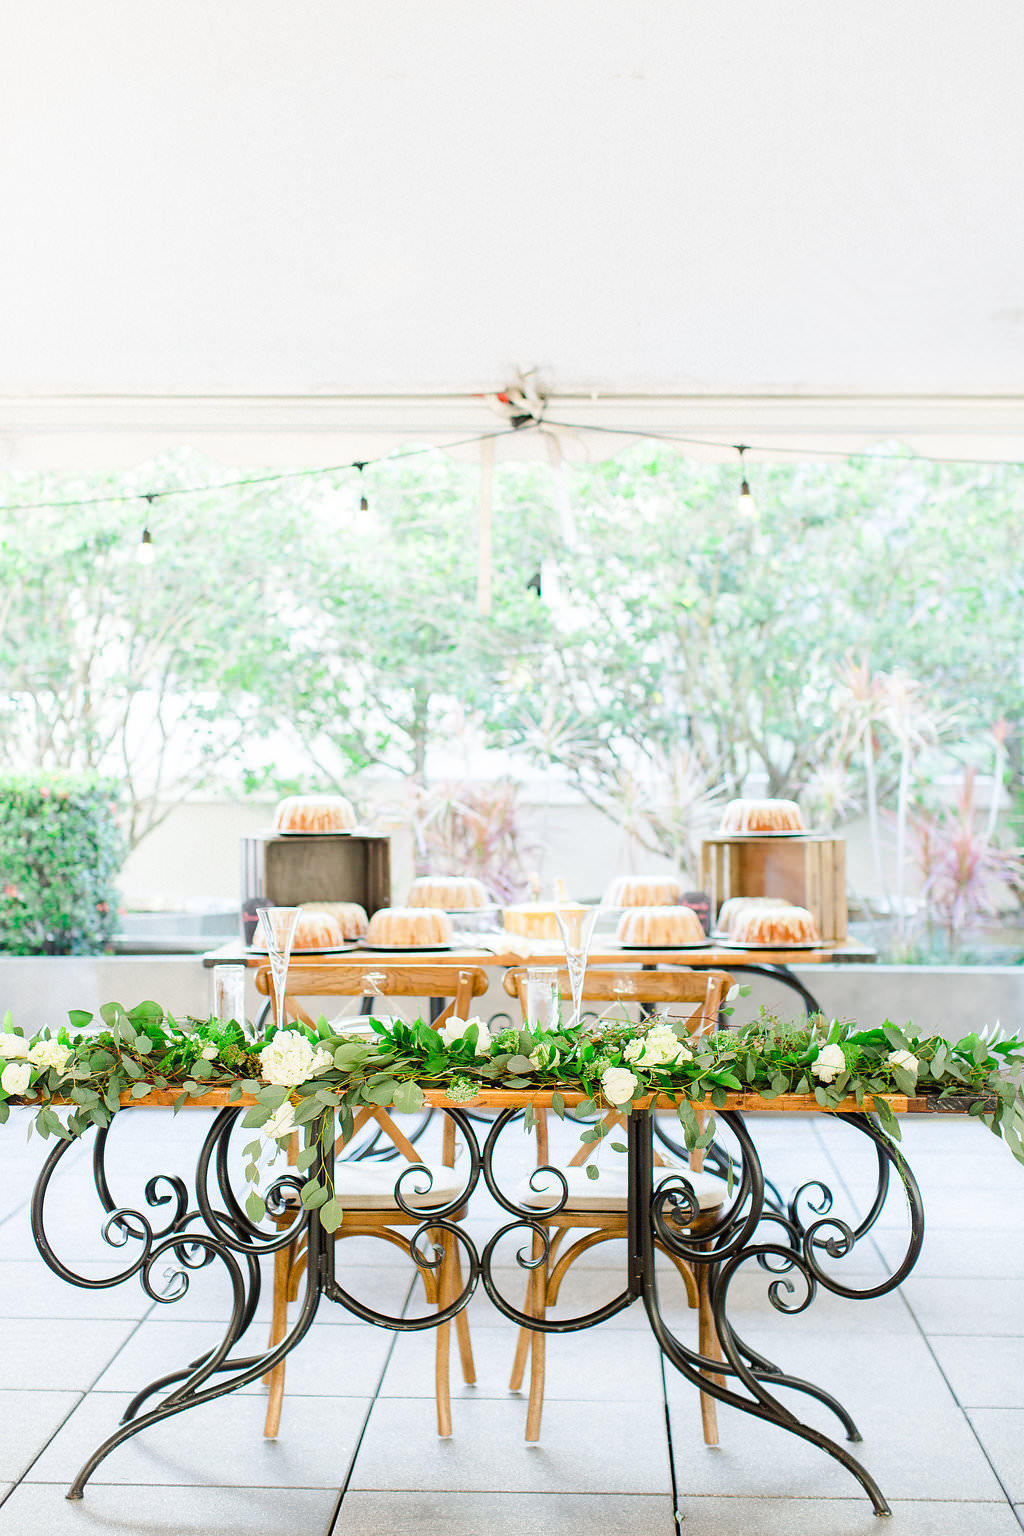 Classic, Organic Earthy Wedding Reception Decor, Unique Black and Wood Sweetheart Table, Wooden Chiavari Chairs and Dessert Table with Bundt Cakes | Tampa Bay Hotel Wedding Venue Epicurean Hotel